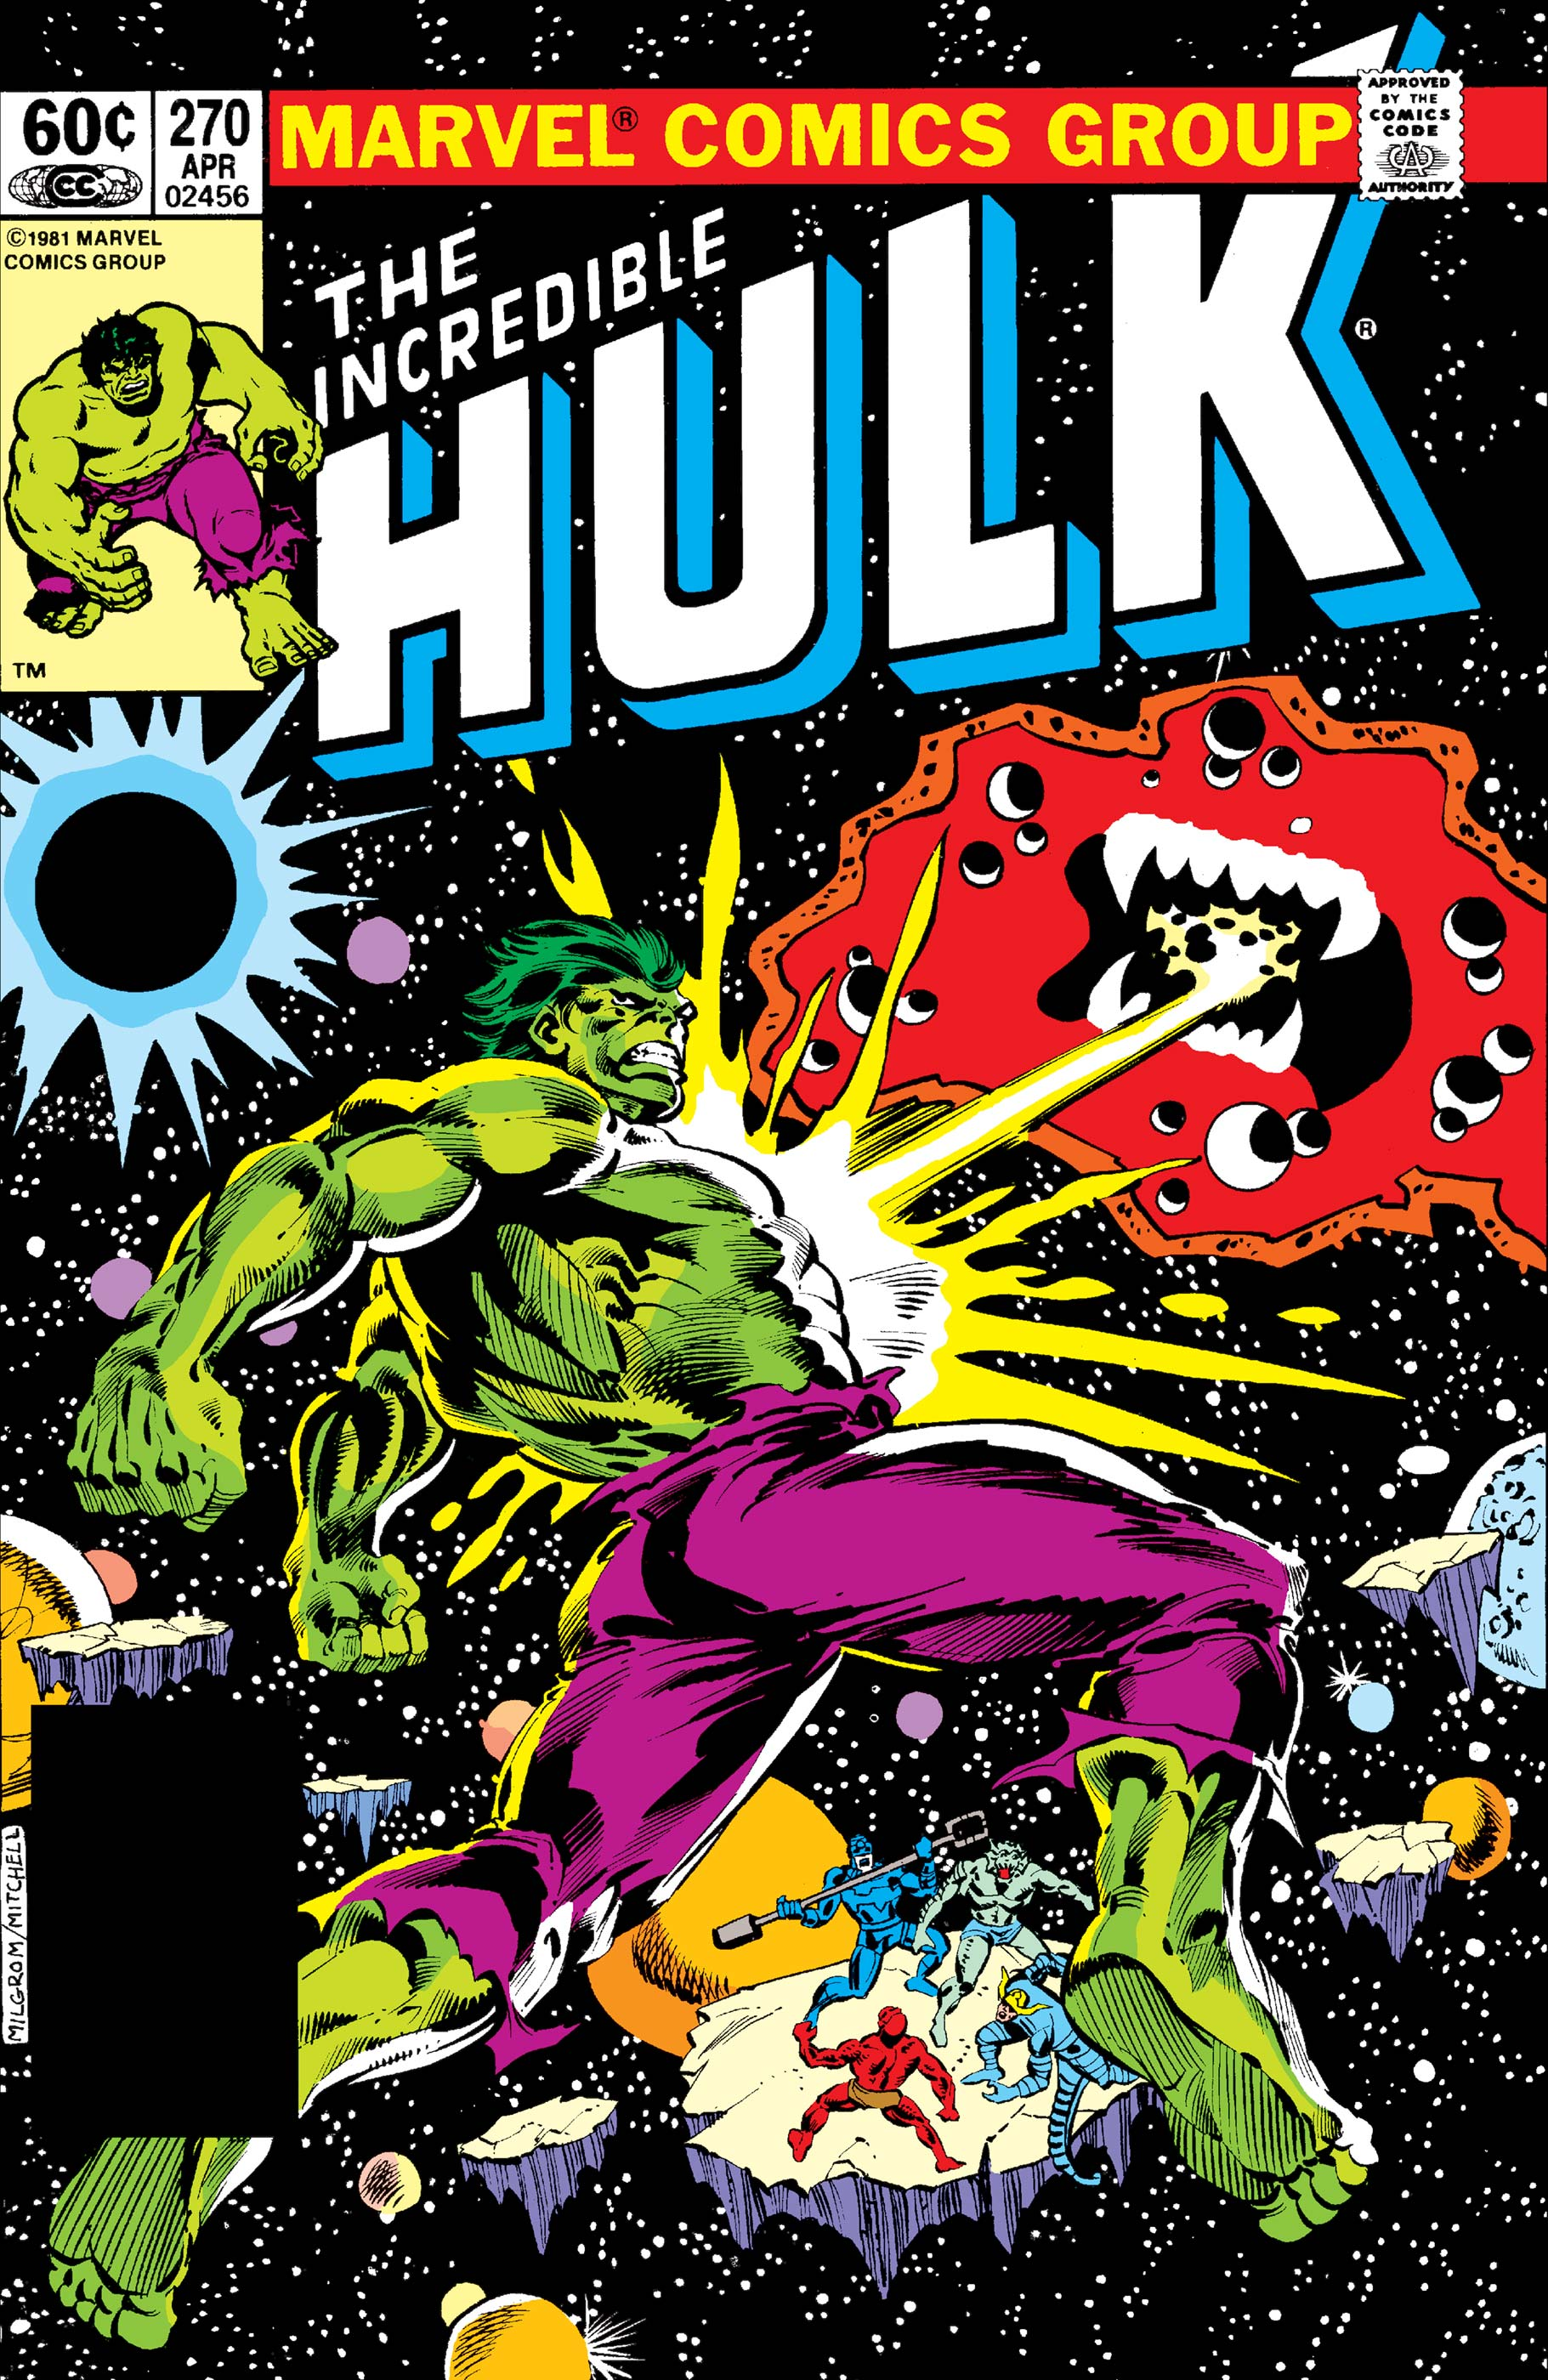 Incredible Hulk (1962) #270